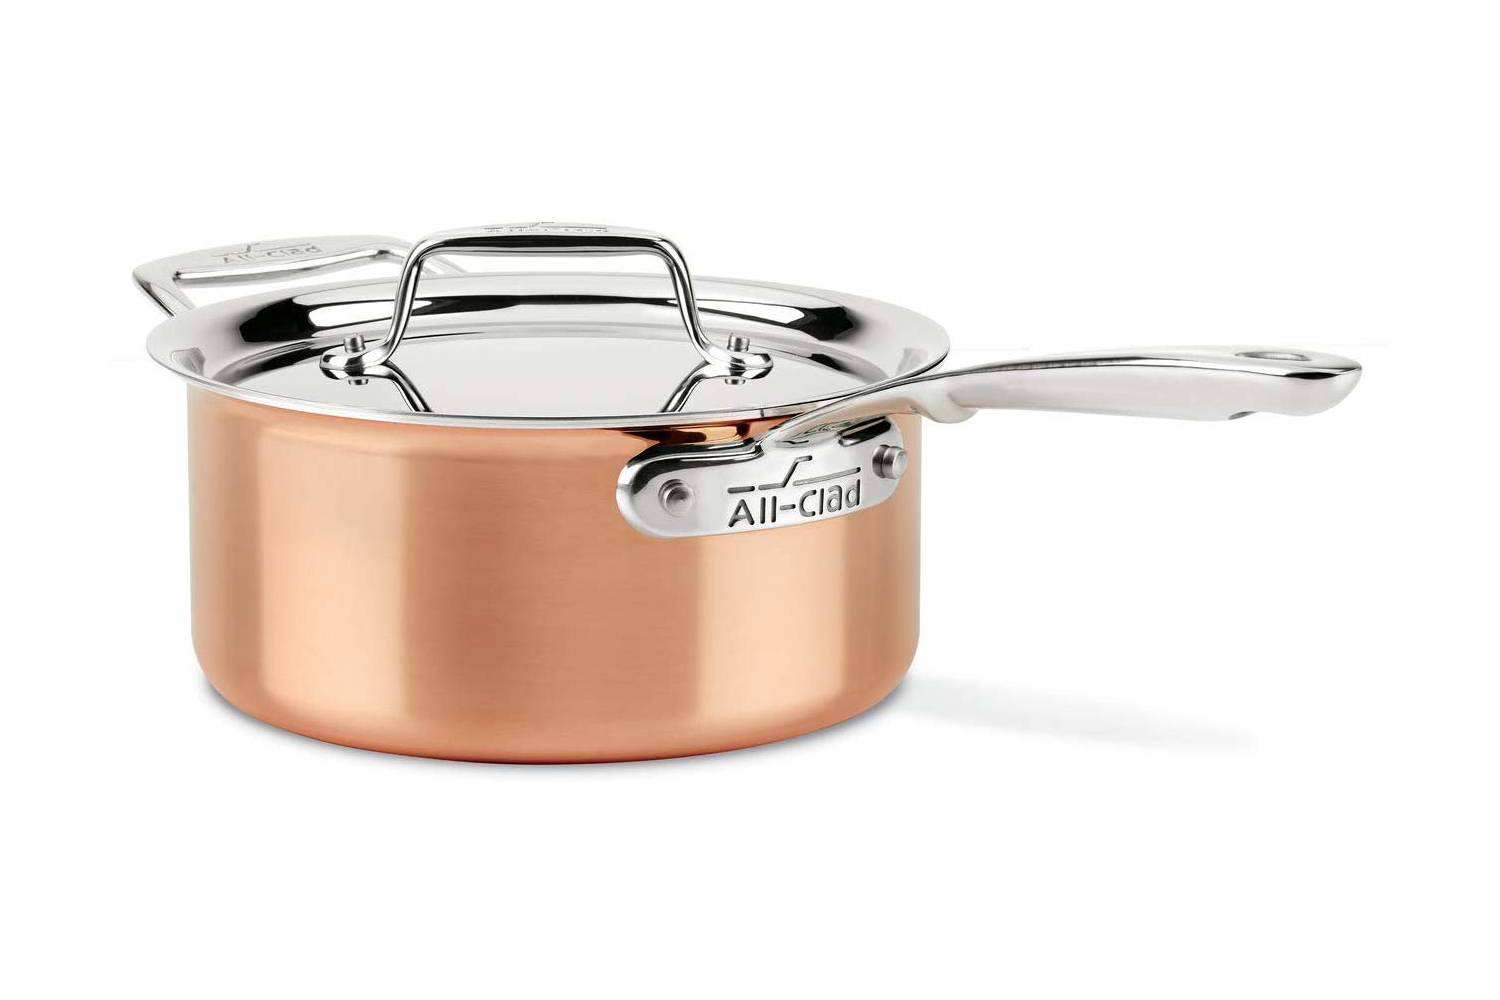 All-Clad c4 Copper 3 qt. Sauce Pan w/Lid